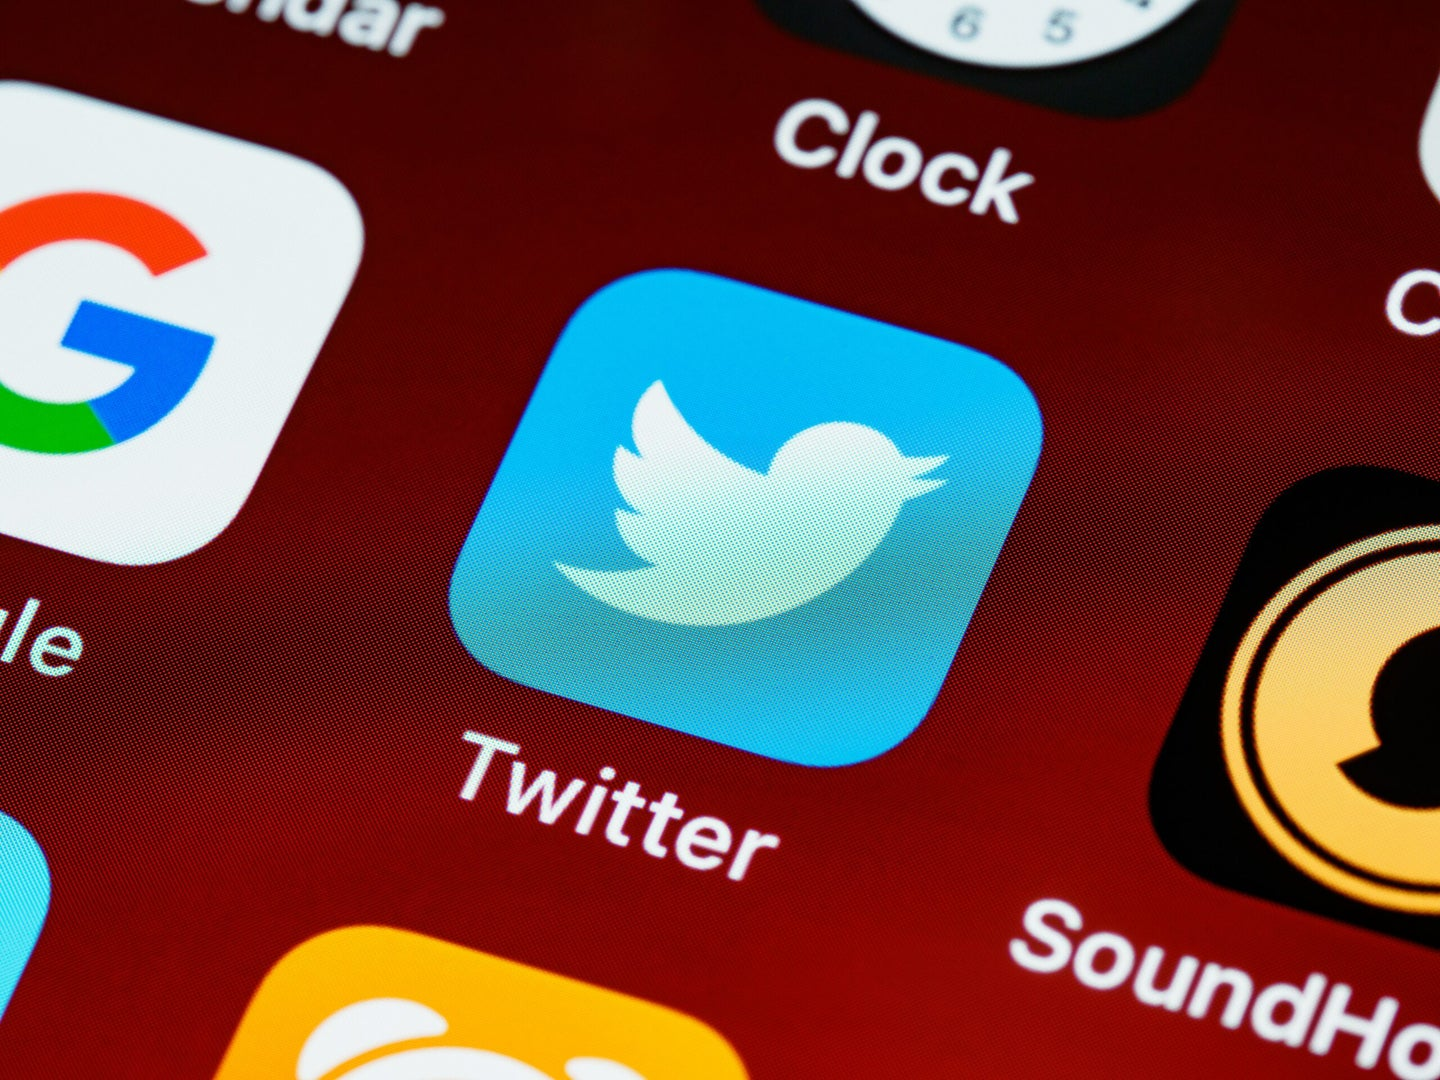 Twitter icon on a smartphone with other app icons.